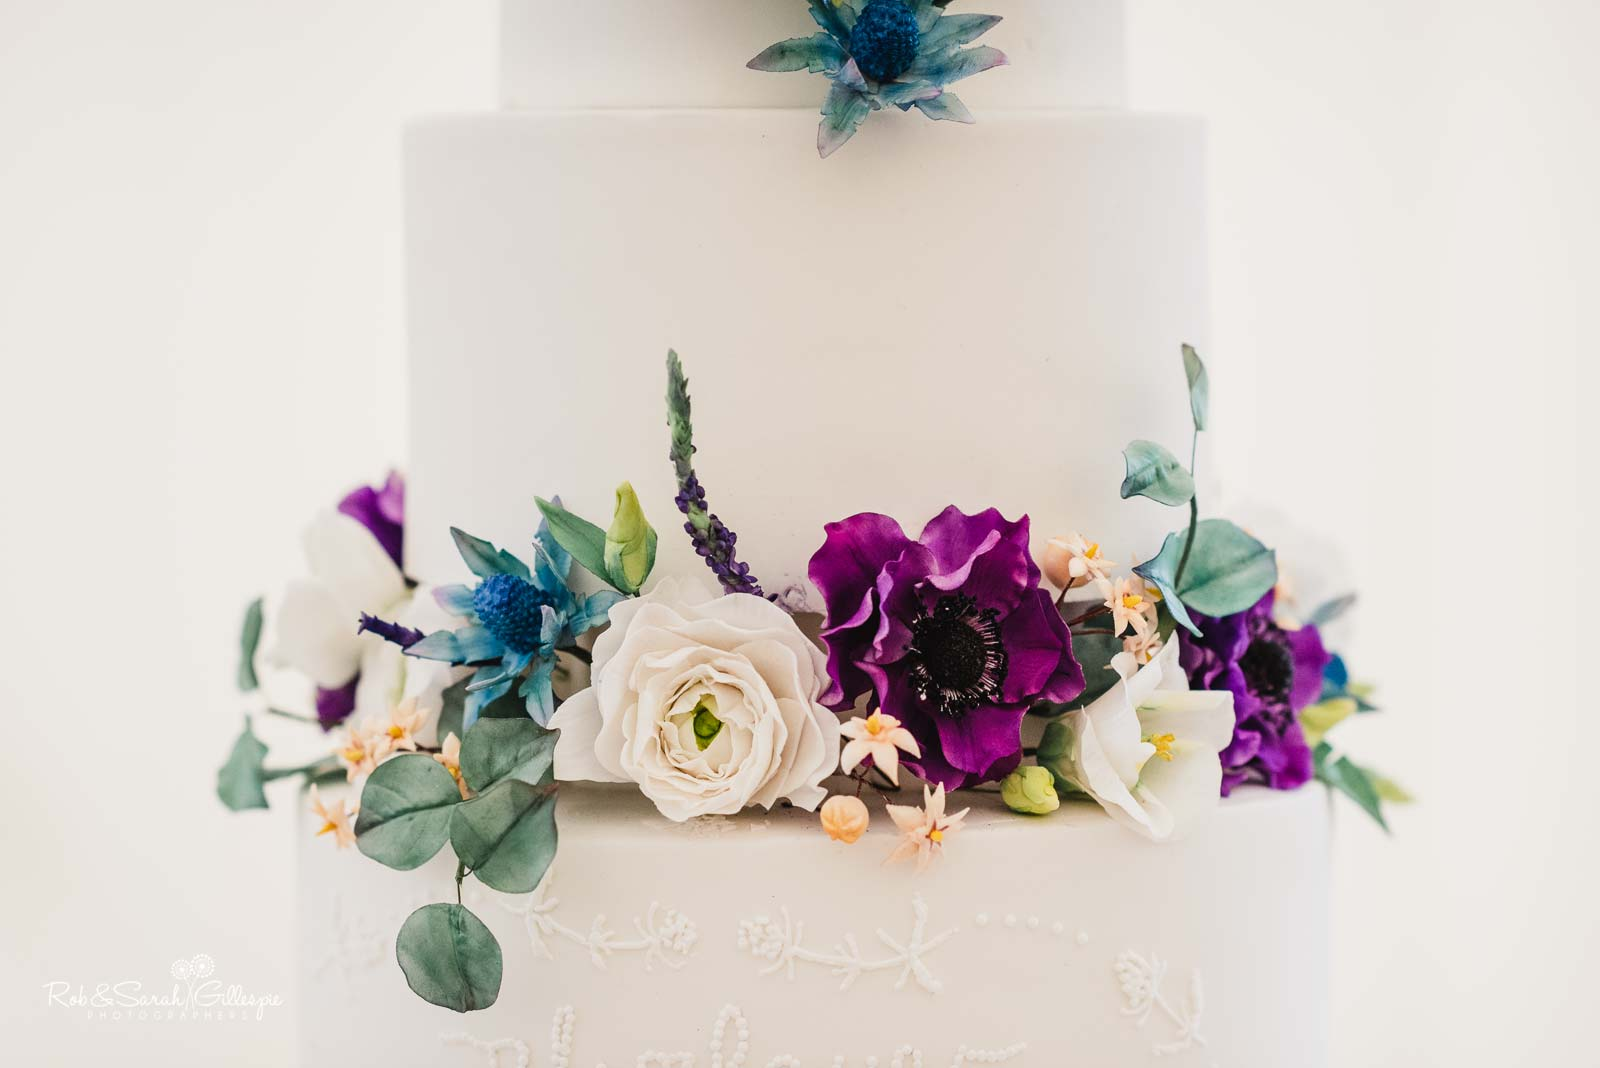 Wedding cake at Wethele Manor